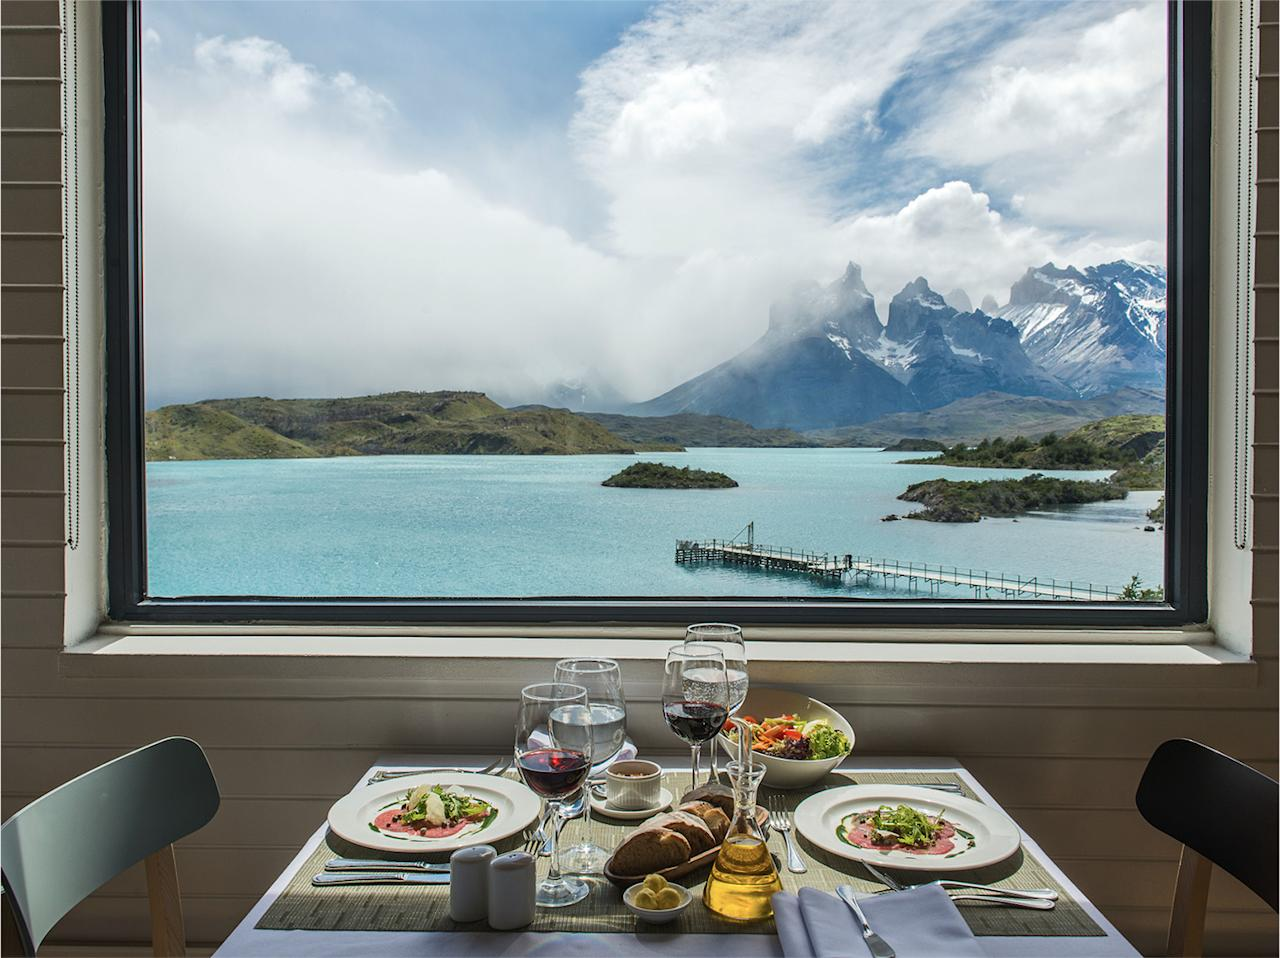 Overlooking Lake Pehoé, this hotel is home to a huge 14,830-acre equine facility and sits at the bottom of the picturesque Patagonian mountains.